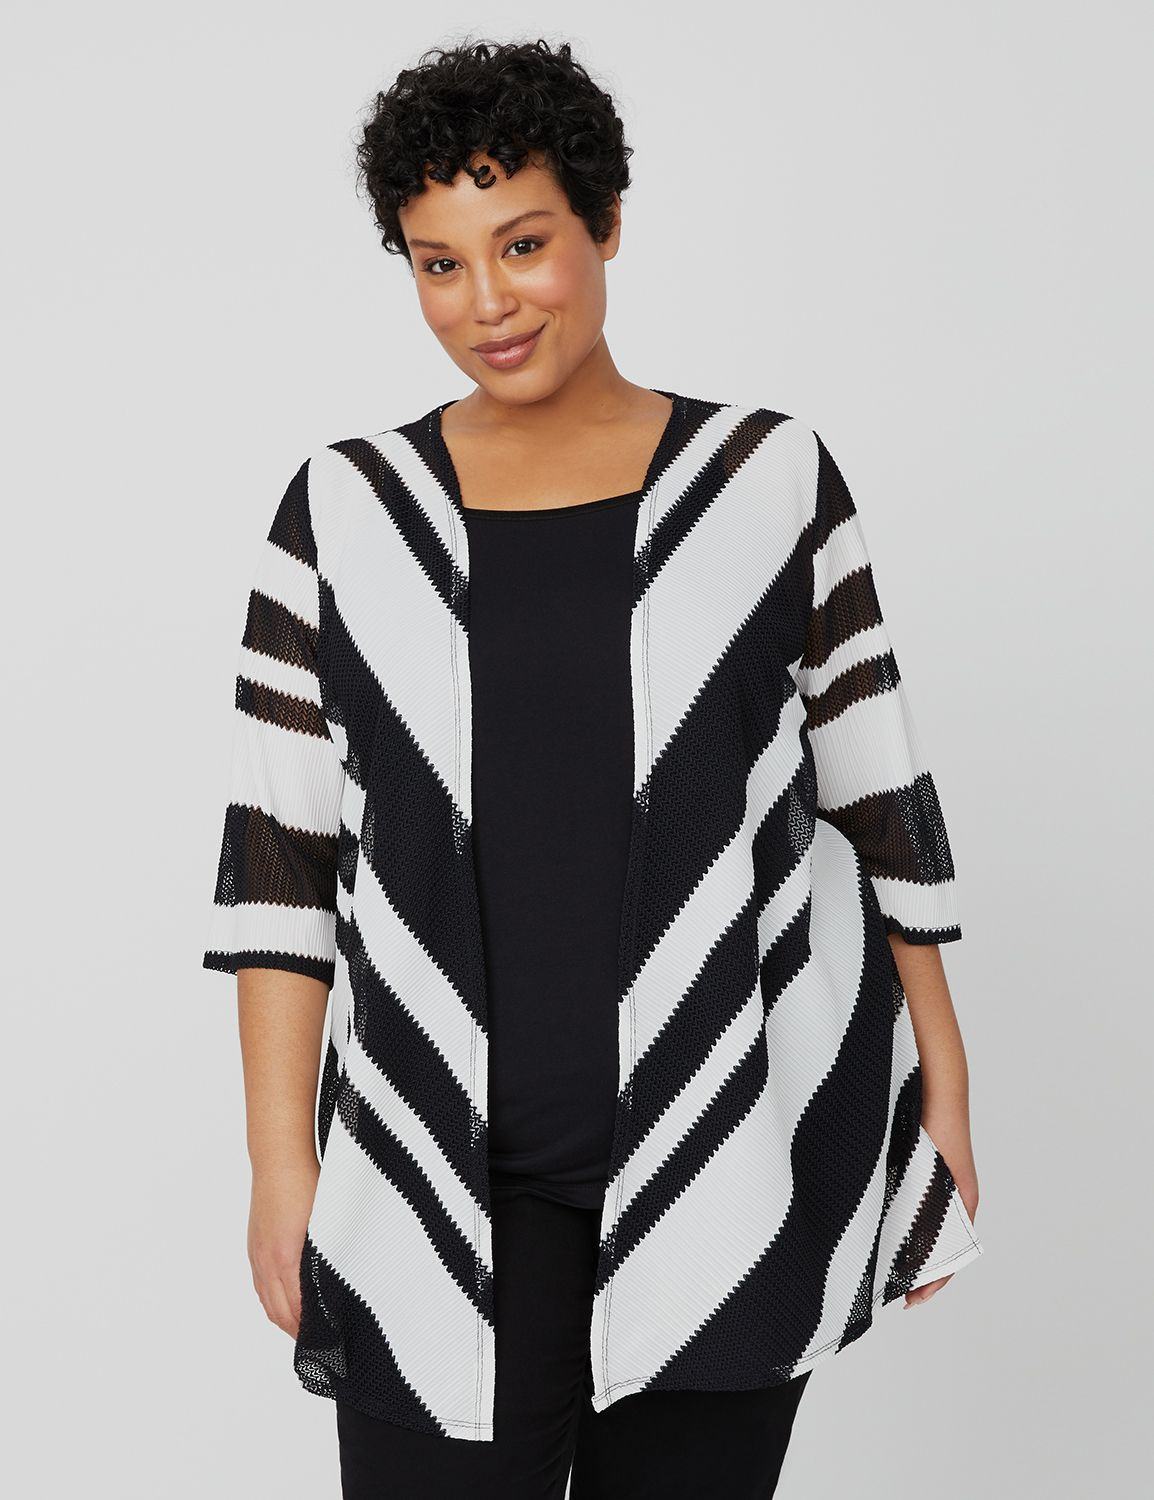 Cascading Herringbone Cardigan 1089908 BLK/WHT HERRINGBONE COLORBL MP-300099901